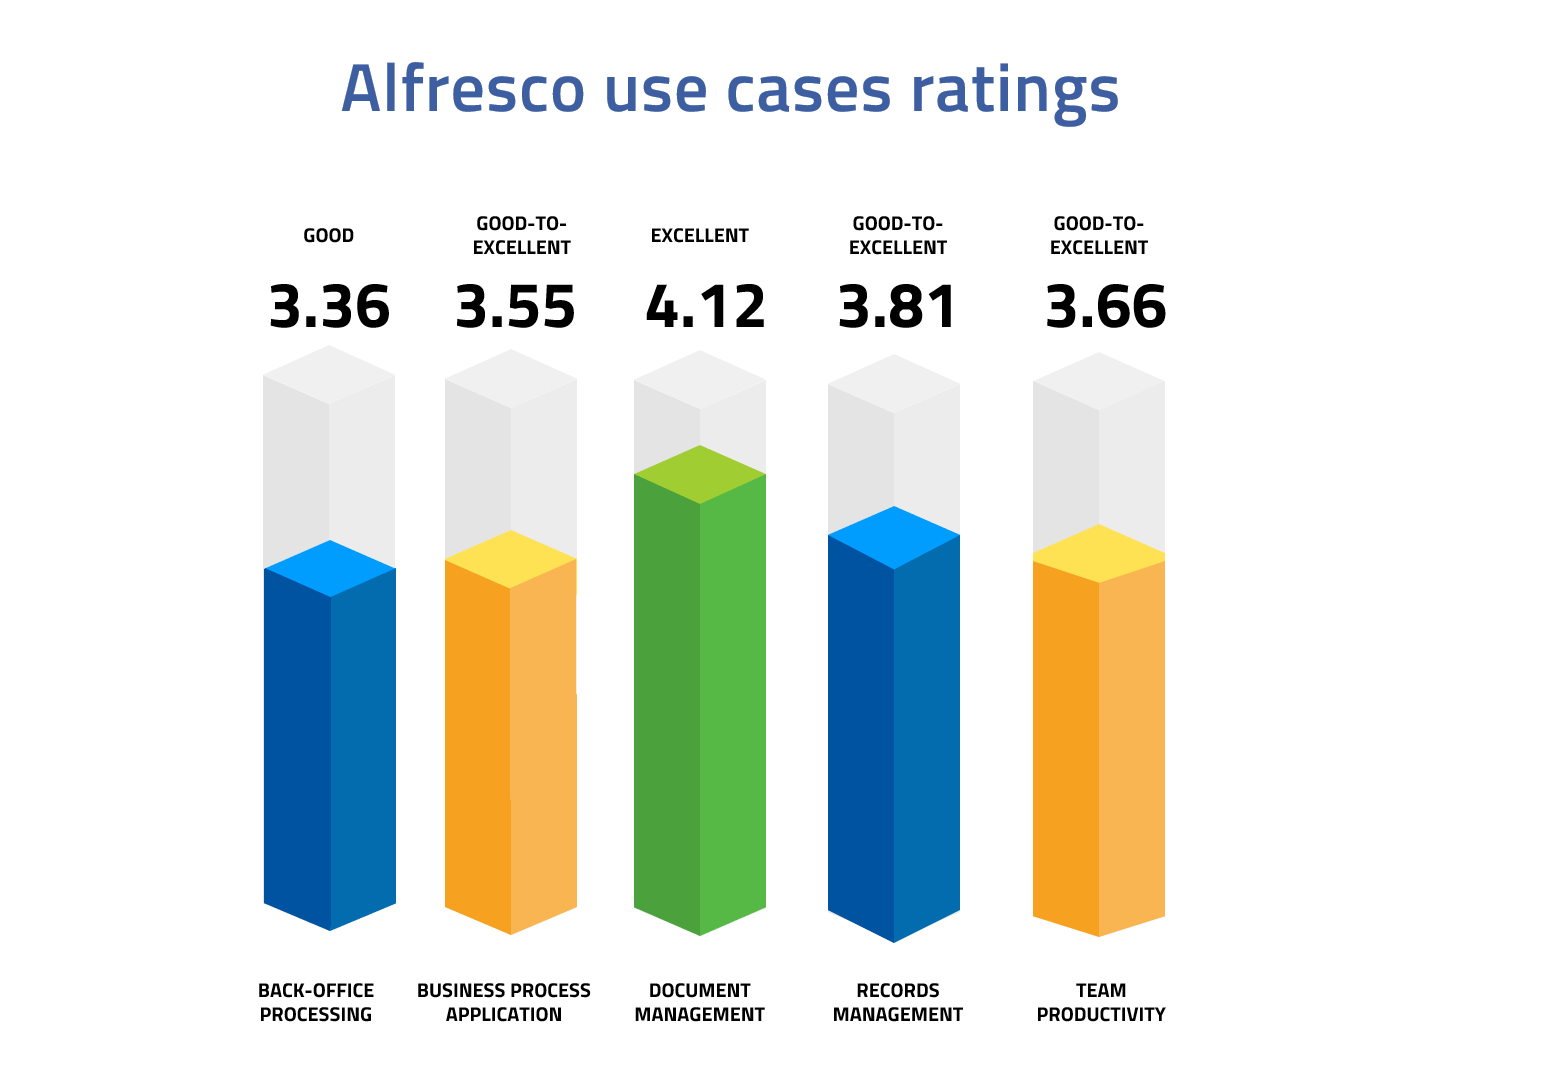 Alfresco use cases ratings-1